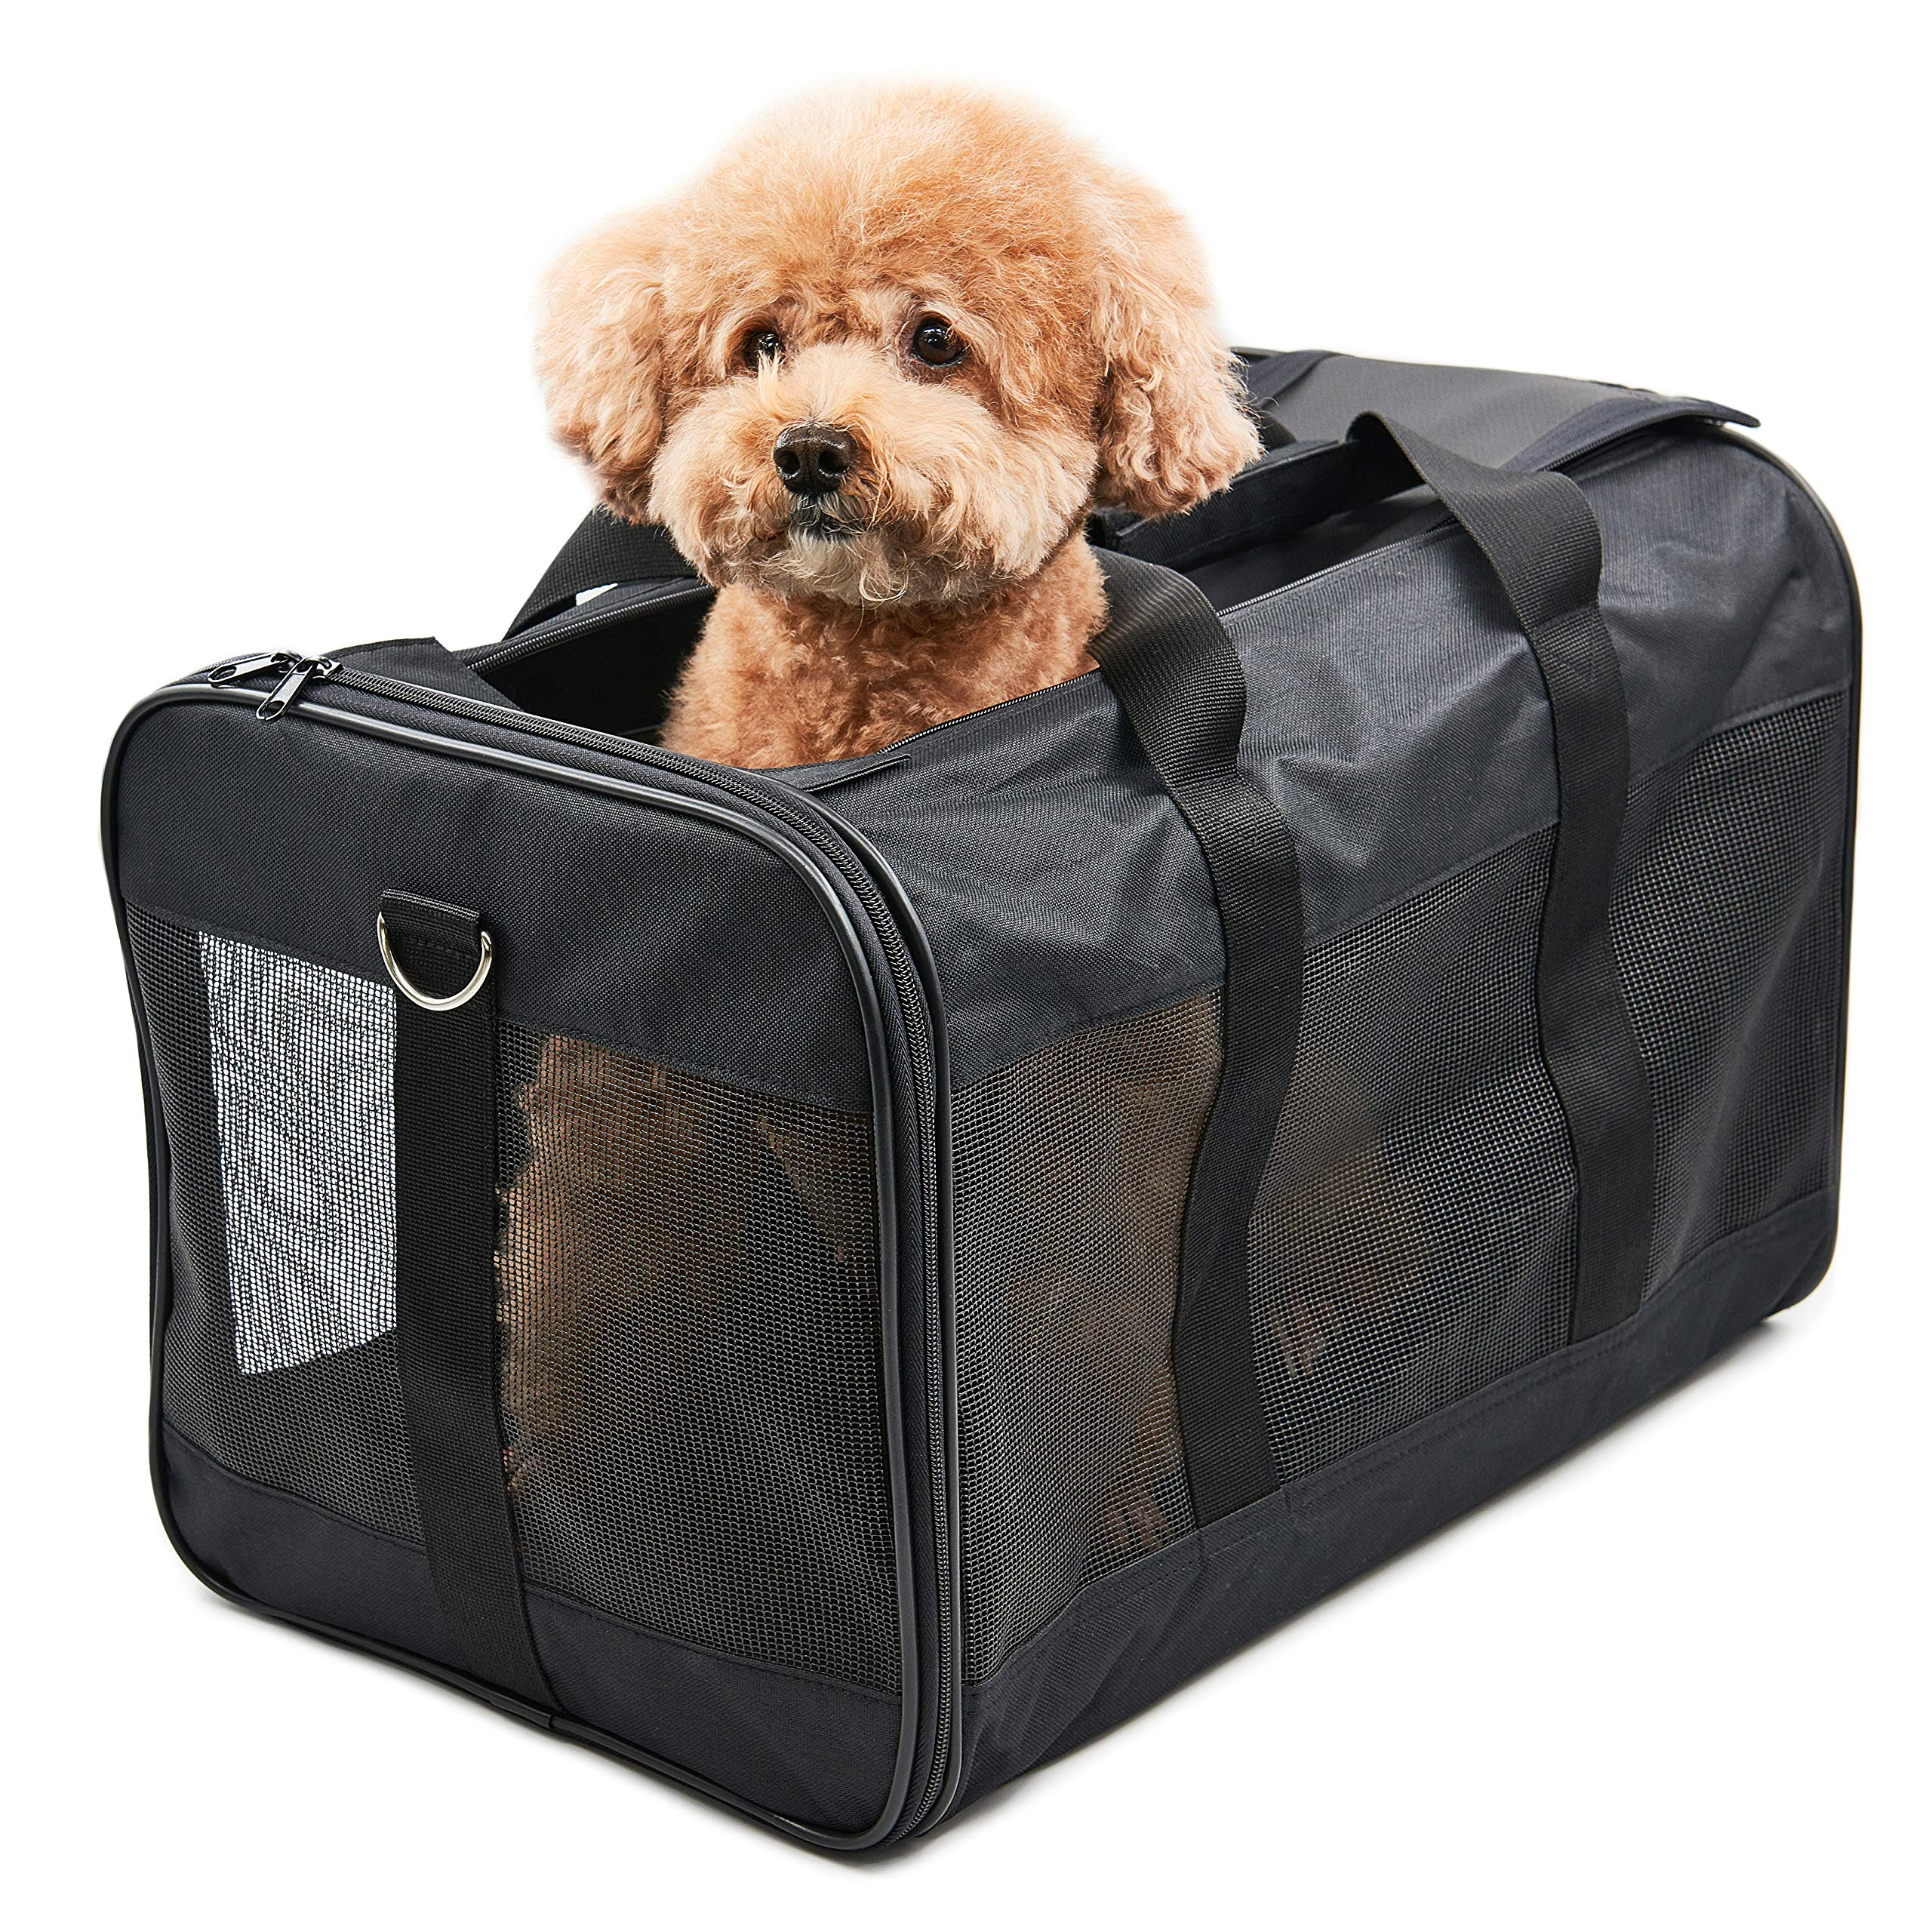 Amazon.com : ScratchMe Pet Travel Carrier Soft Sided Portable Bag for Cats and Small Dogs, Collapsible, Durable, Airline Approved, Travel Friendly, Carry Your Pet with Safely and Comfortably, Black : Pet Supplies